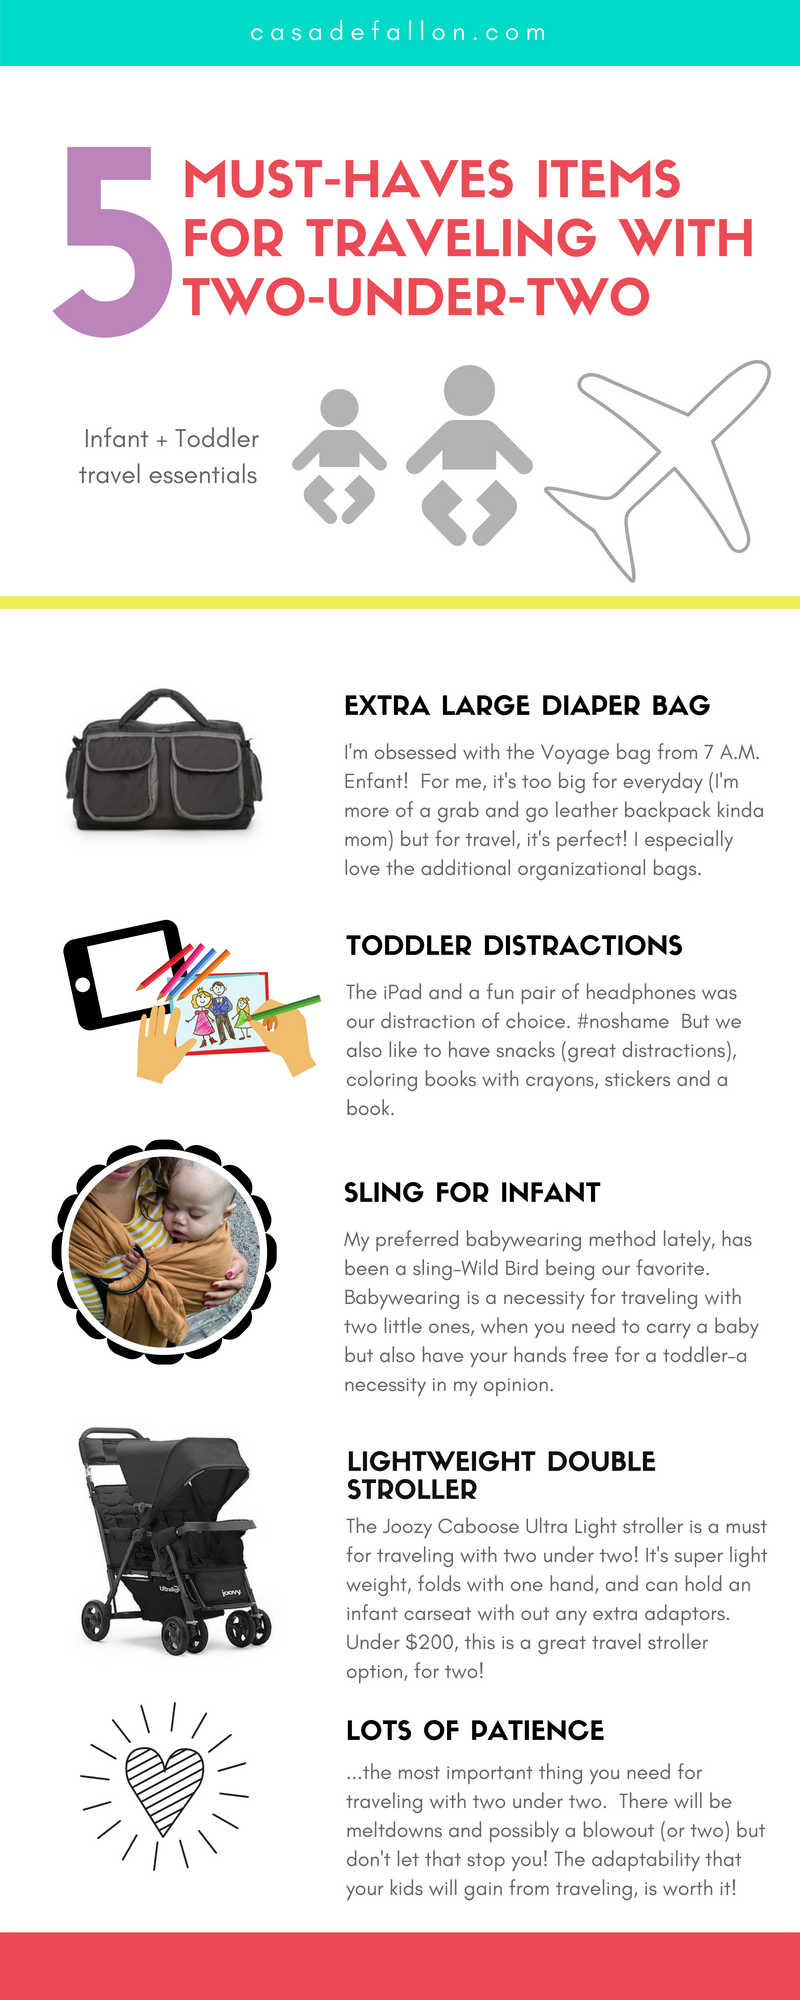 5-items-for-traveling-with-two-under-two-2-1.png